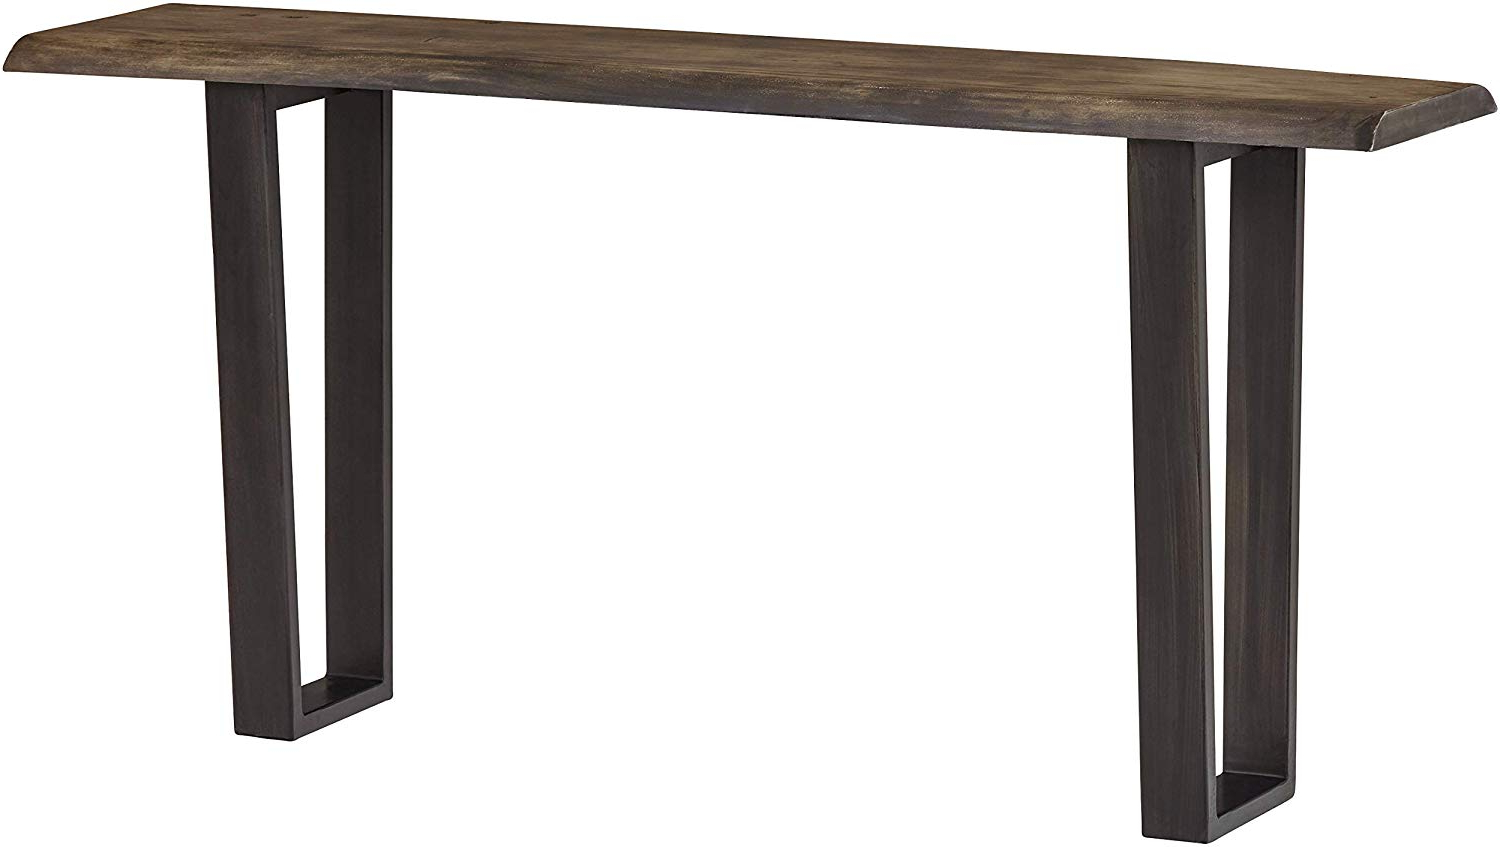 "Preferred Stone & Beam Garrett Rustic Acacia Wood Sofa Table With Iron Legs, 60""w, Gray And Raw Metal For Acacia Wood Top Dining Tables With Iron Legs On Raw Metal (View 3 of 30)"